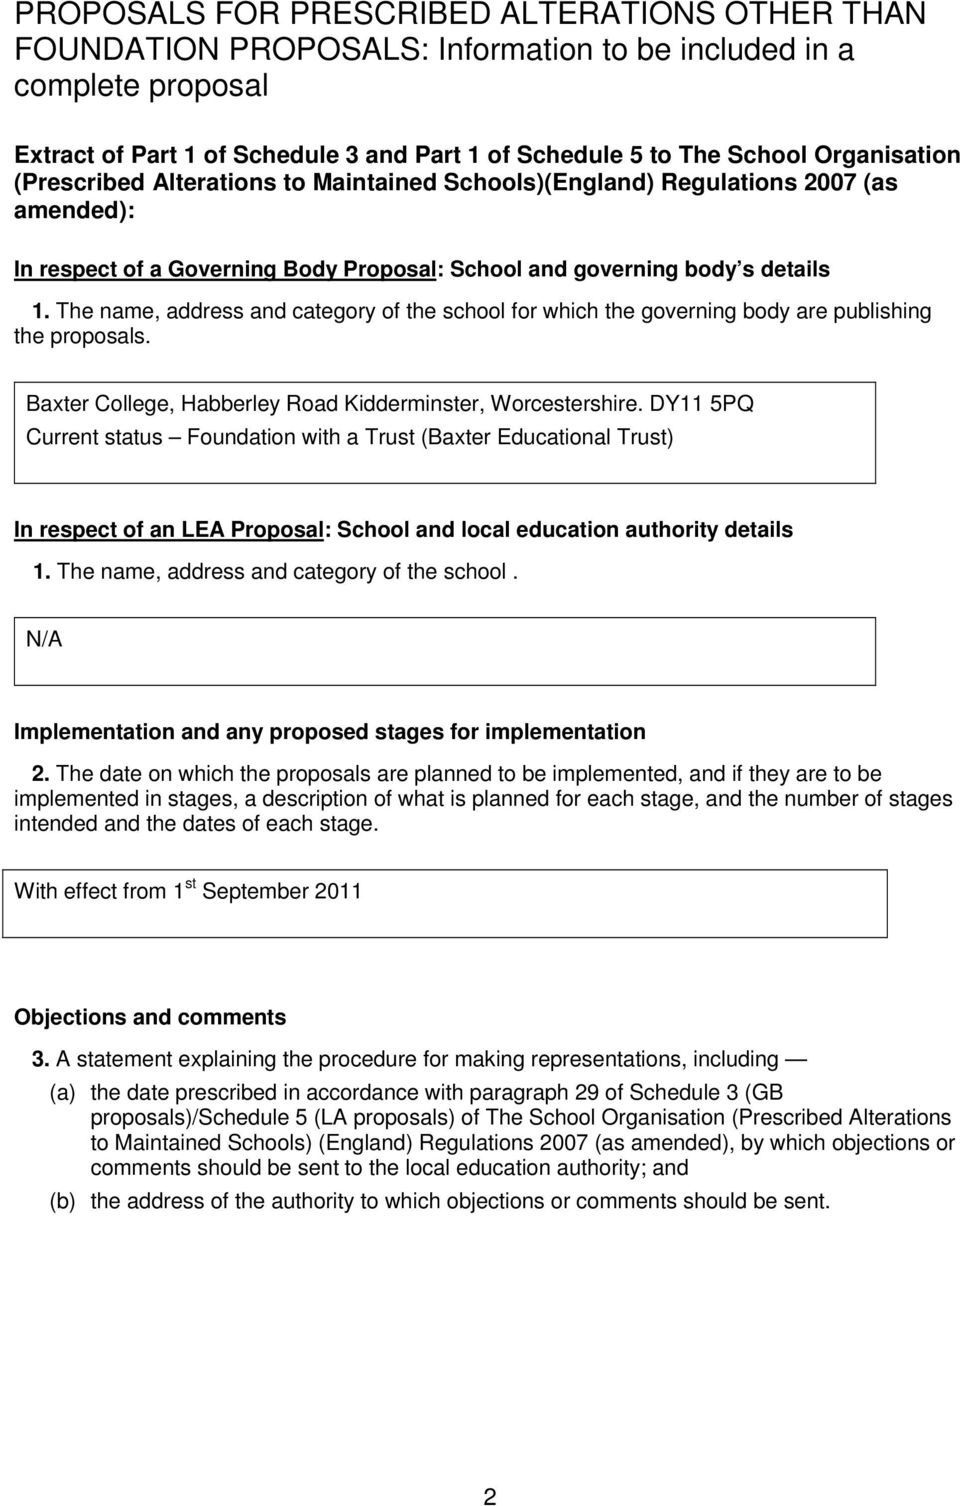 The name, address and category of the school for which the governing body are publishing the proposals. Baxter College, Habberley Road Kidderminster, Worcestershire.